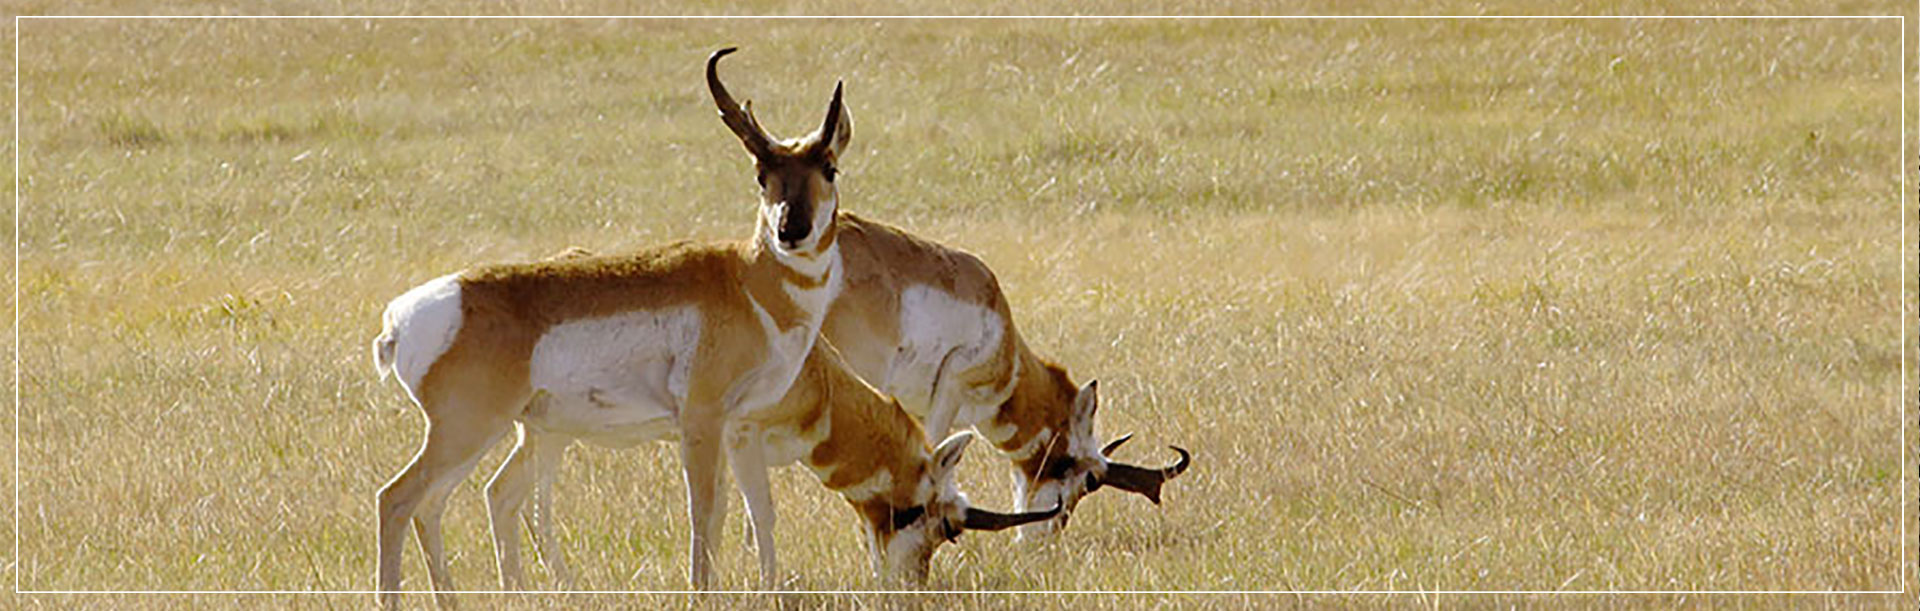 Nebraska Sandhills Pronghorn Antelope Hunts